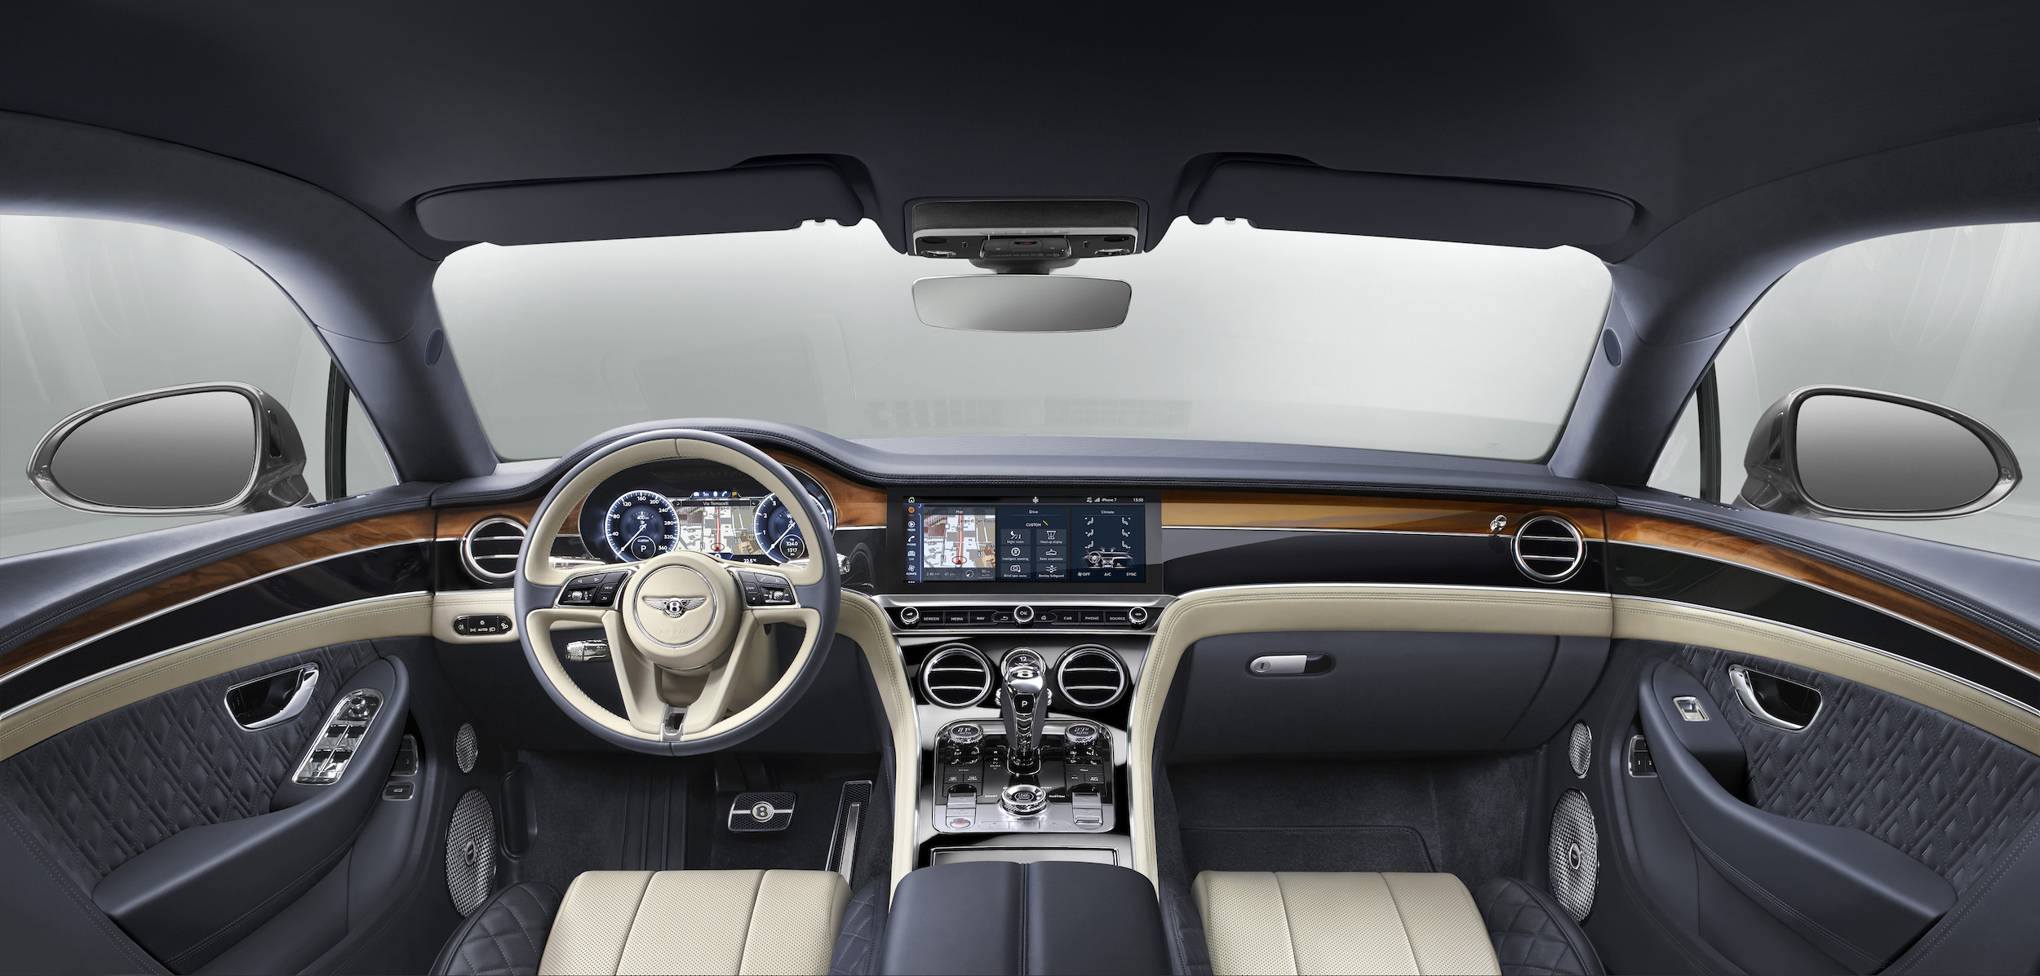 Bentley Continental Gt New Model Is Straight Out Of James Bond Audio Wiring Wired Uk